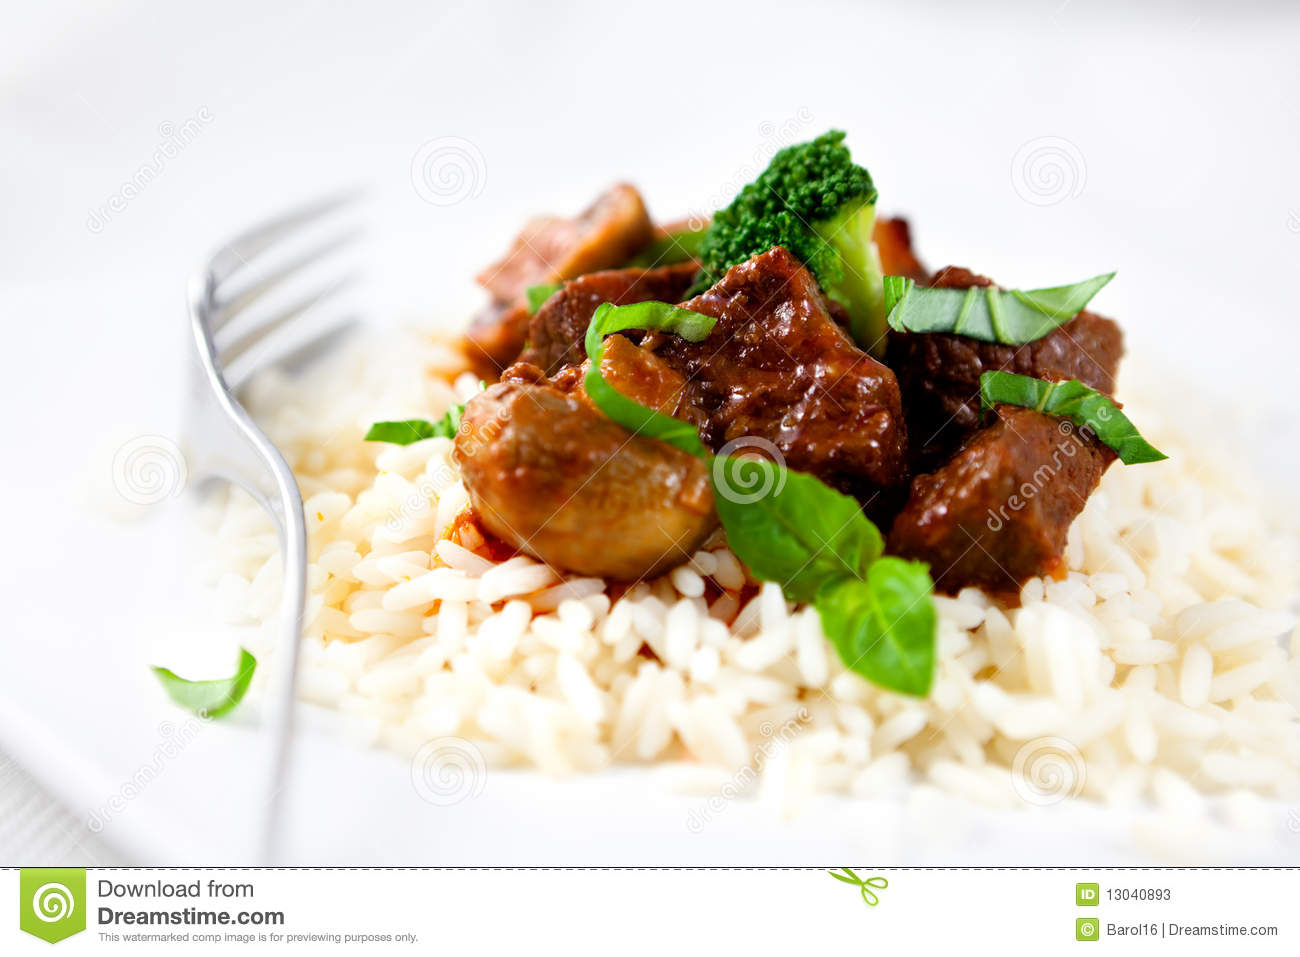 Braised beef with broccoli and rice